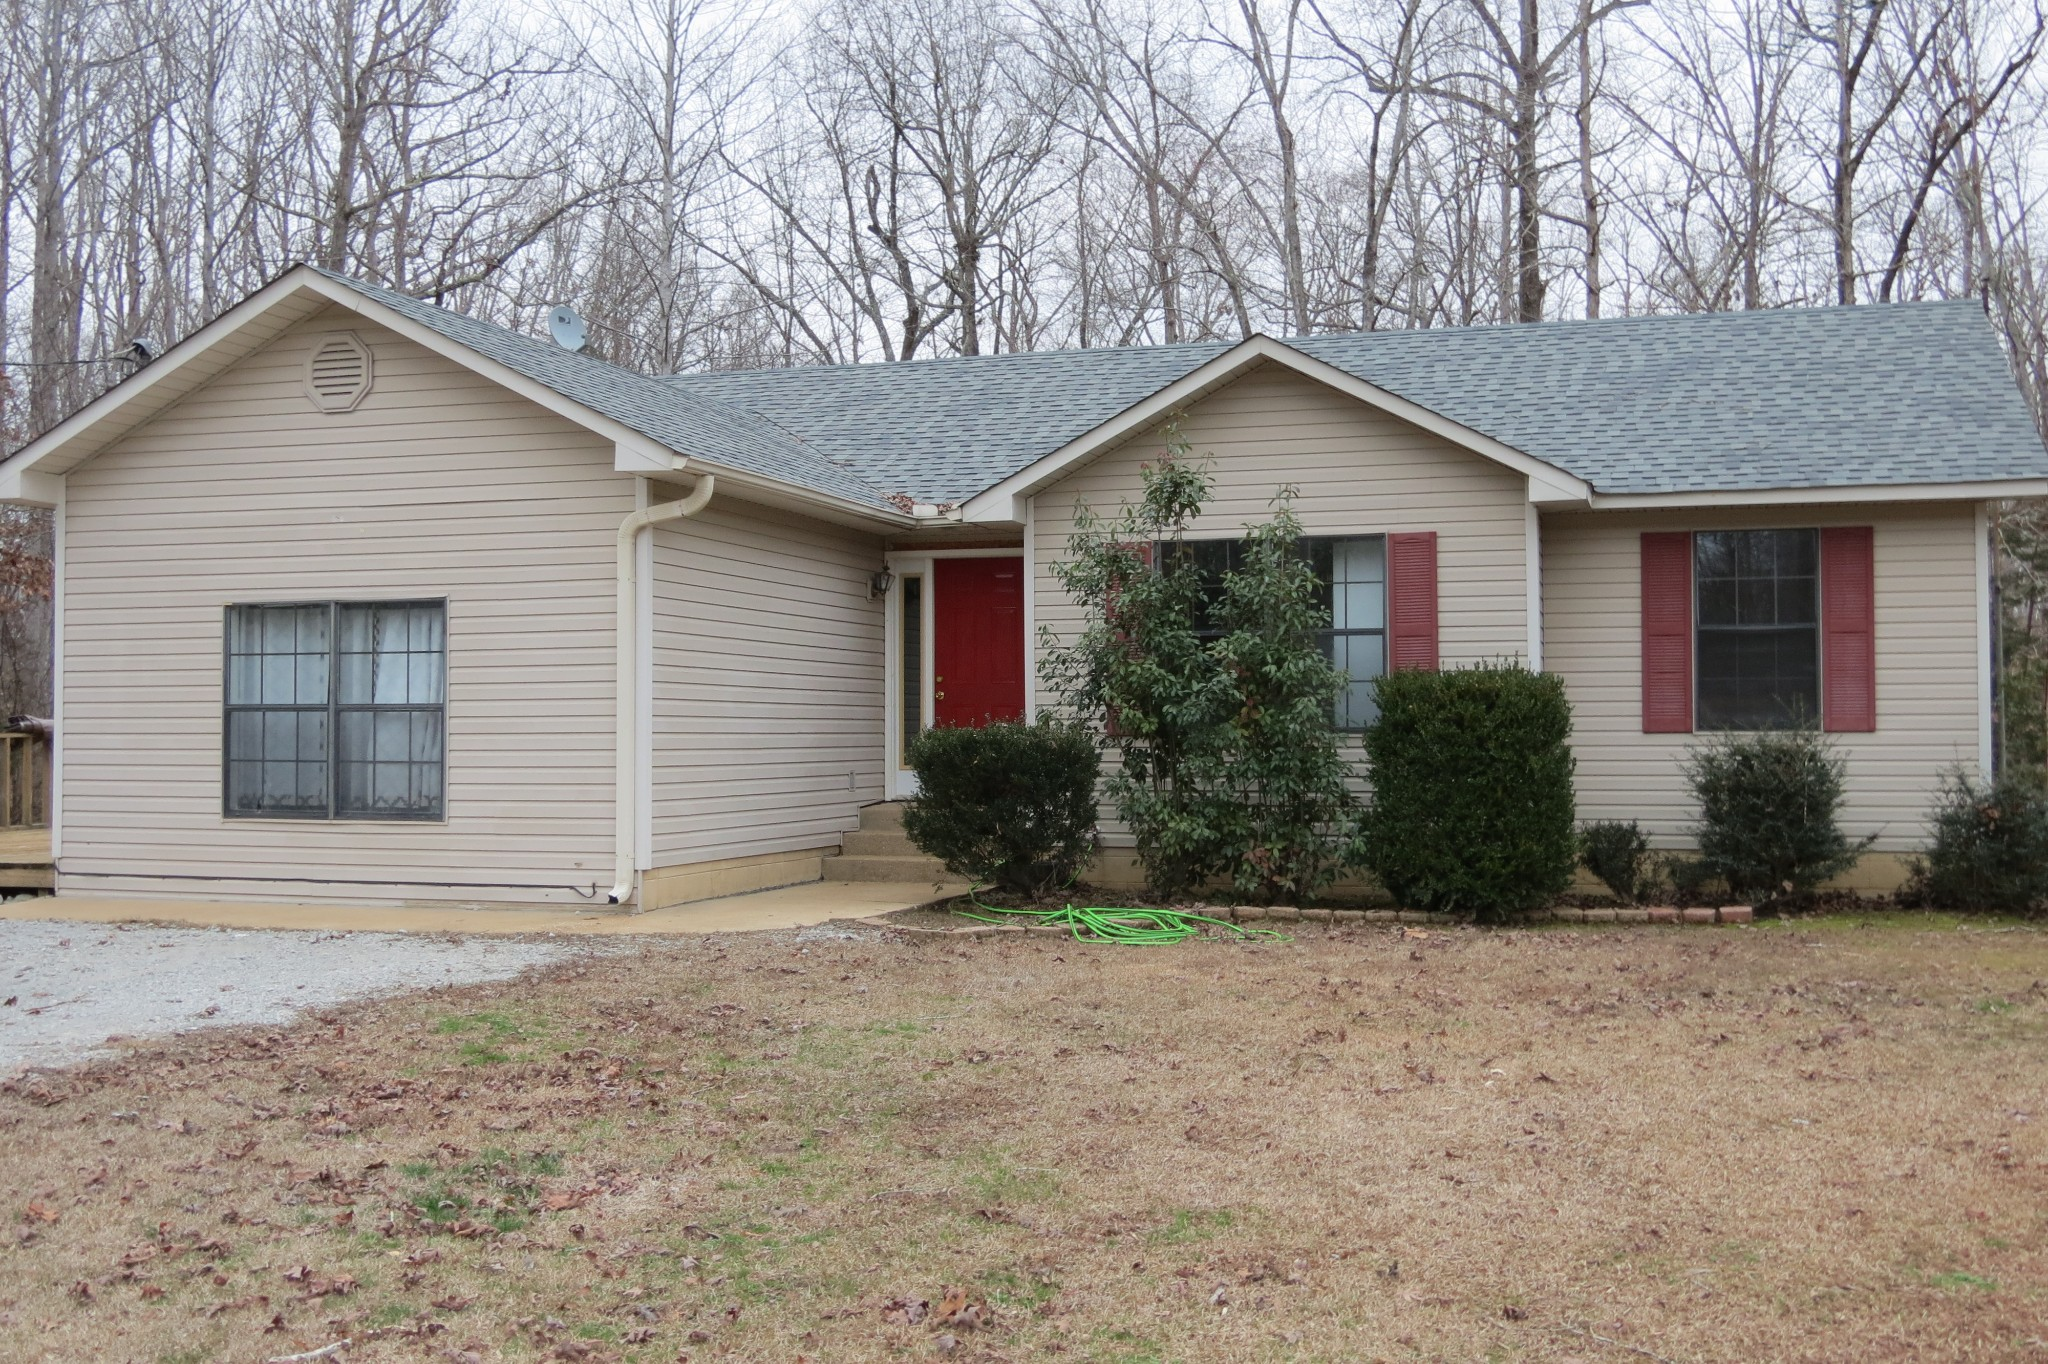 188 Travis Ln, Parsons, TN 38363 - Parsons, TN real estate listing